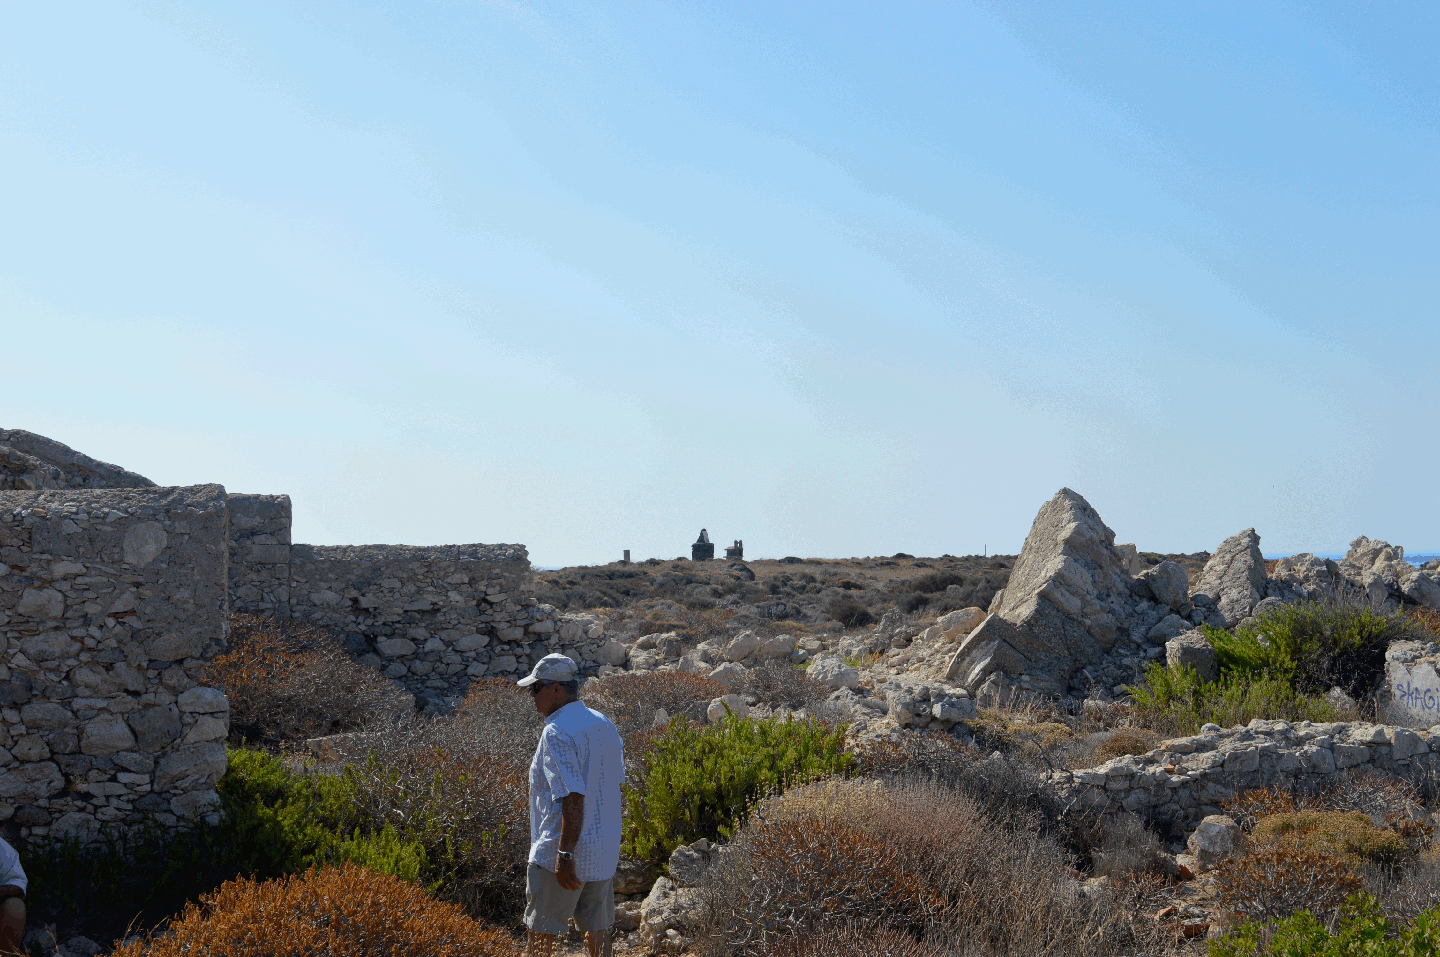 The ruins of the old lighthouse